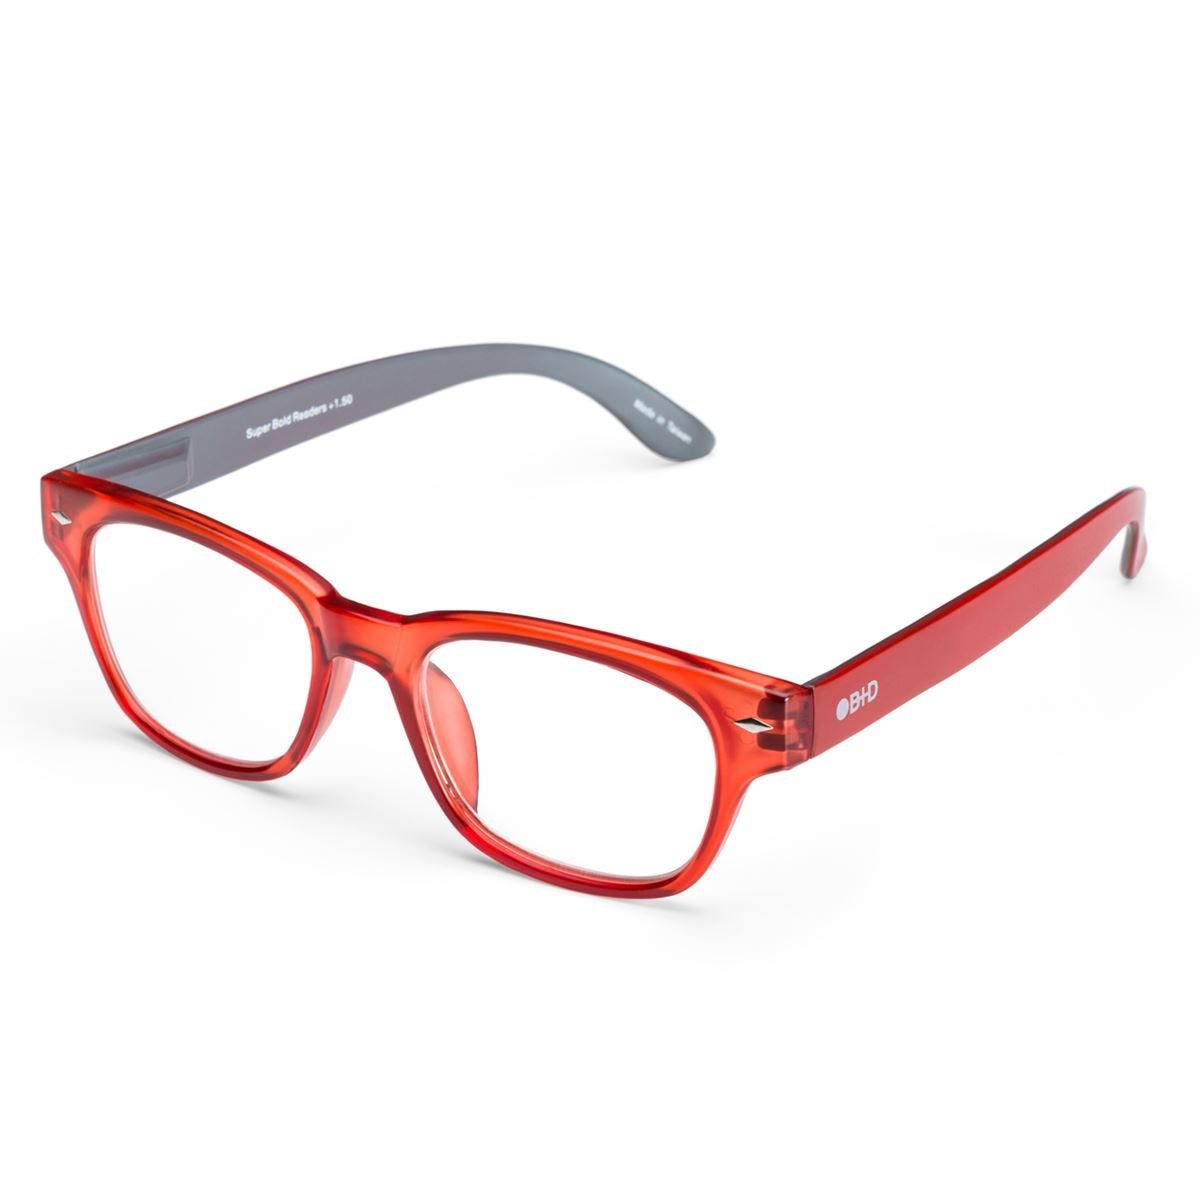 Lentes de lectura pregraduados super bold matt red +2.00  - Sanborns